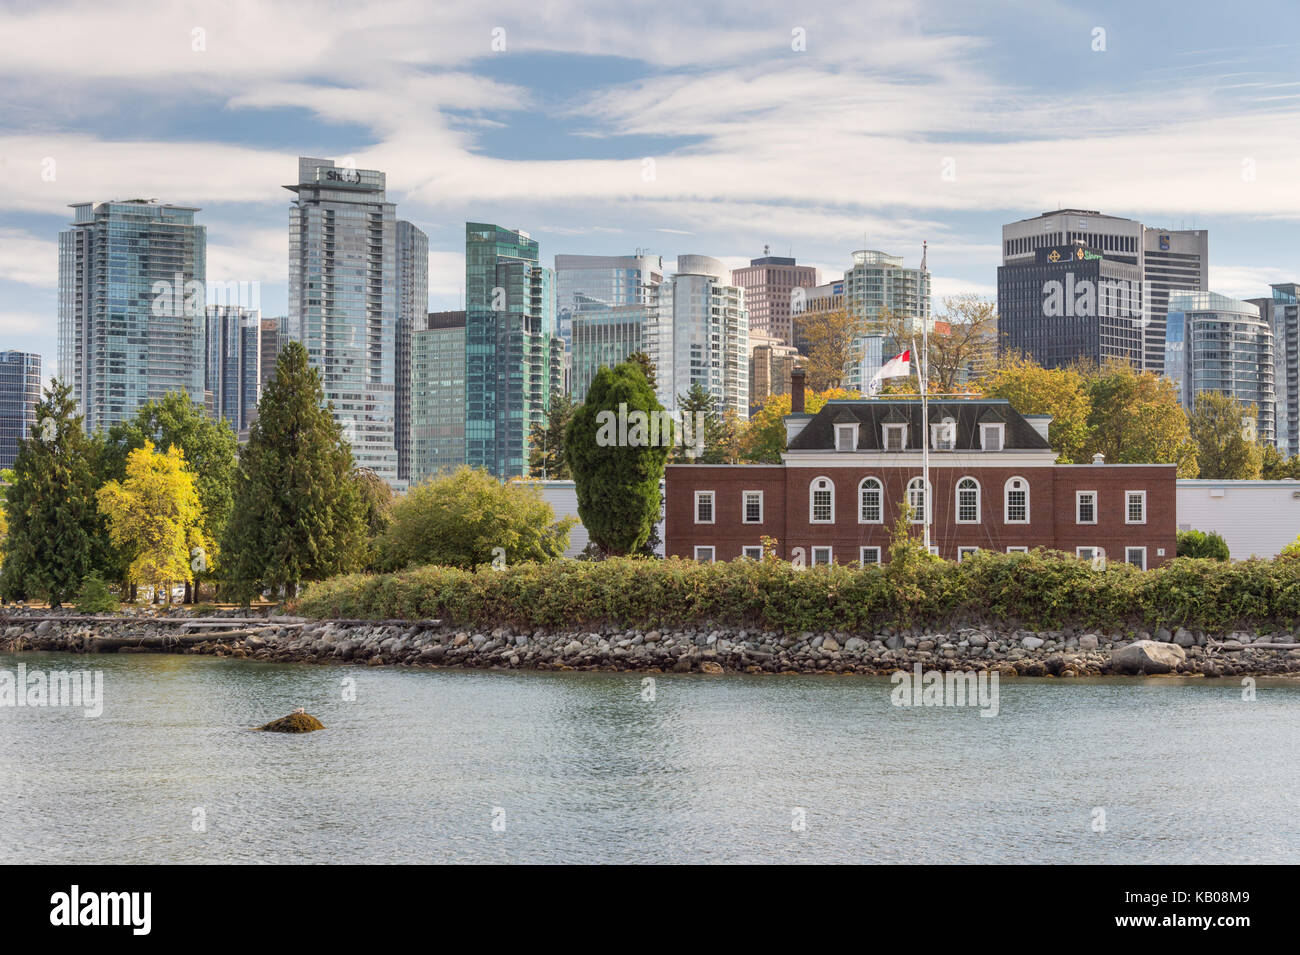 Vancouver, British Columbia, Canada - 12 September 2017: Naval Museum at H.M.C.S. Discovery in Stanley Park - Stock Image